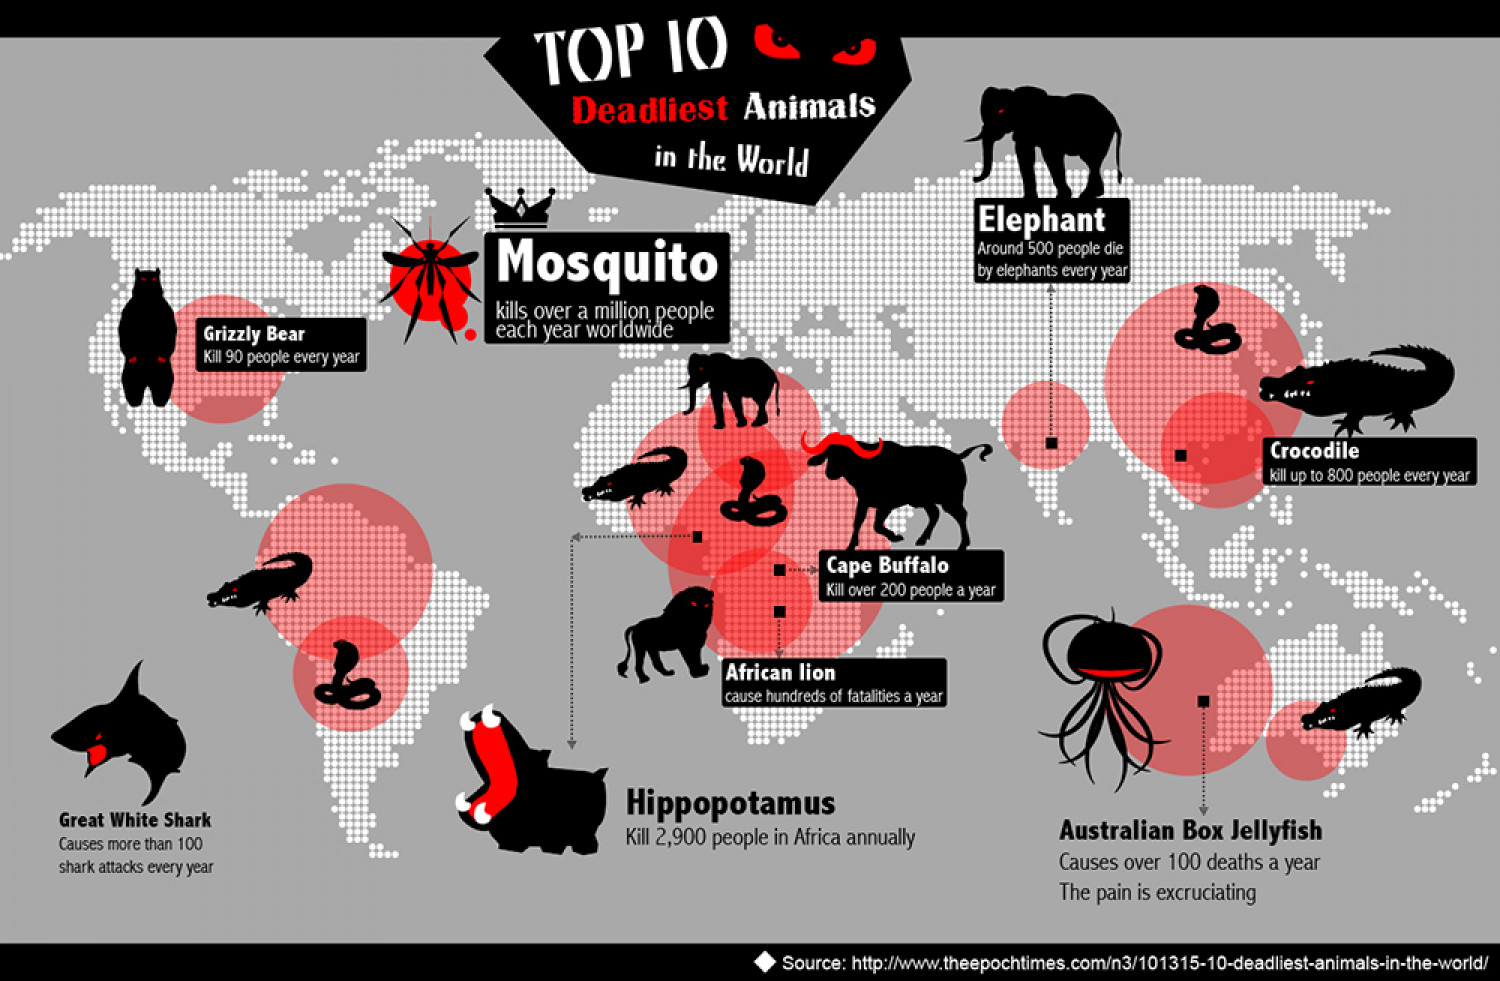 Top 10 deadliest animals in the world Infographic